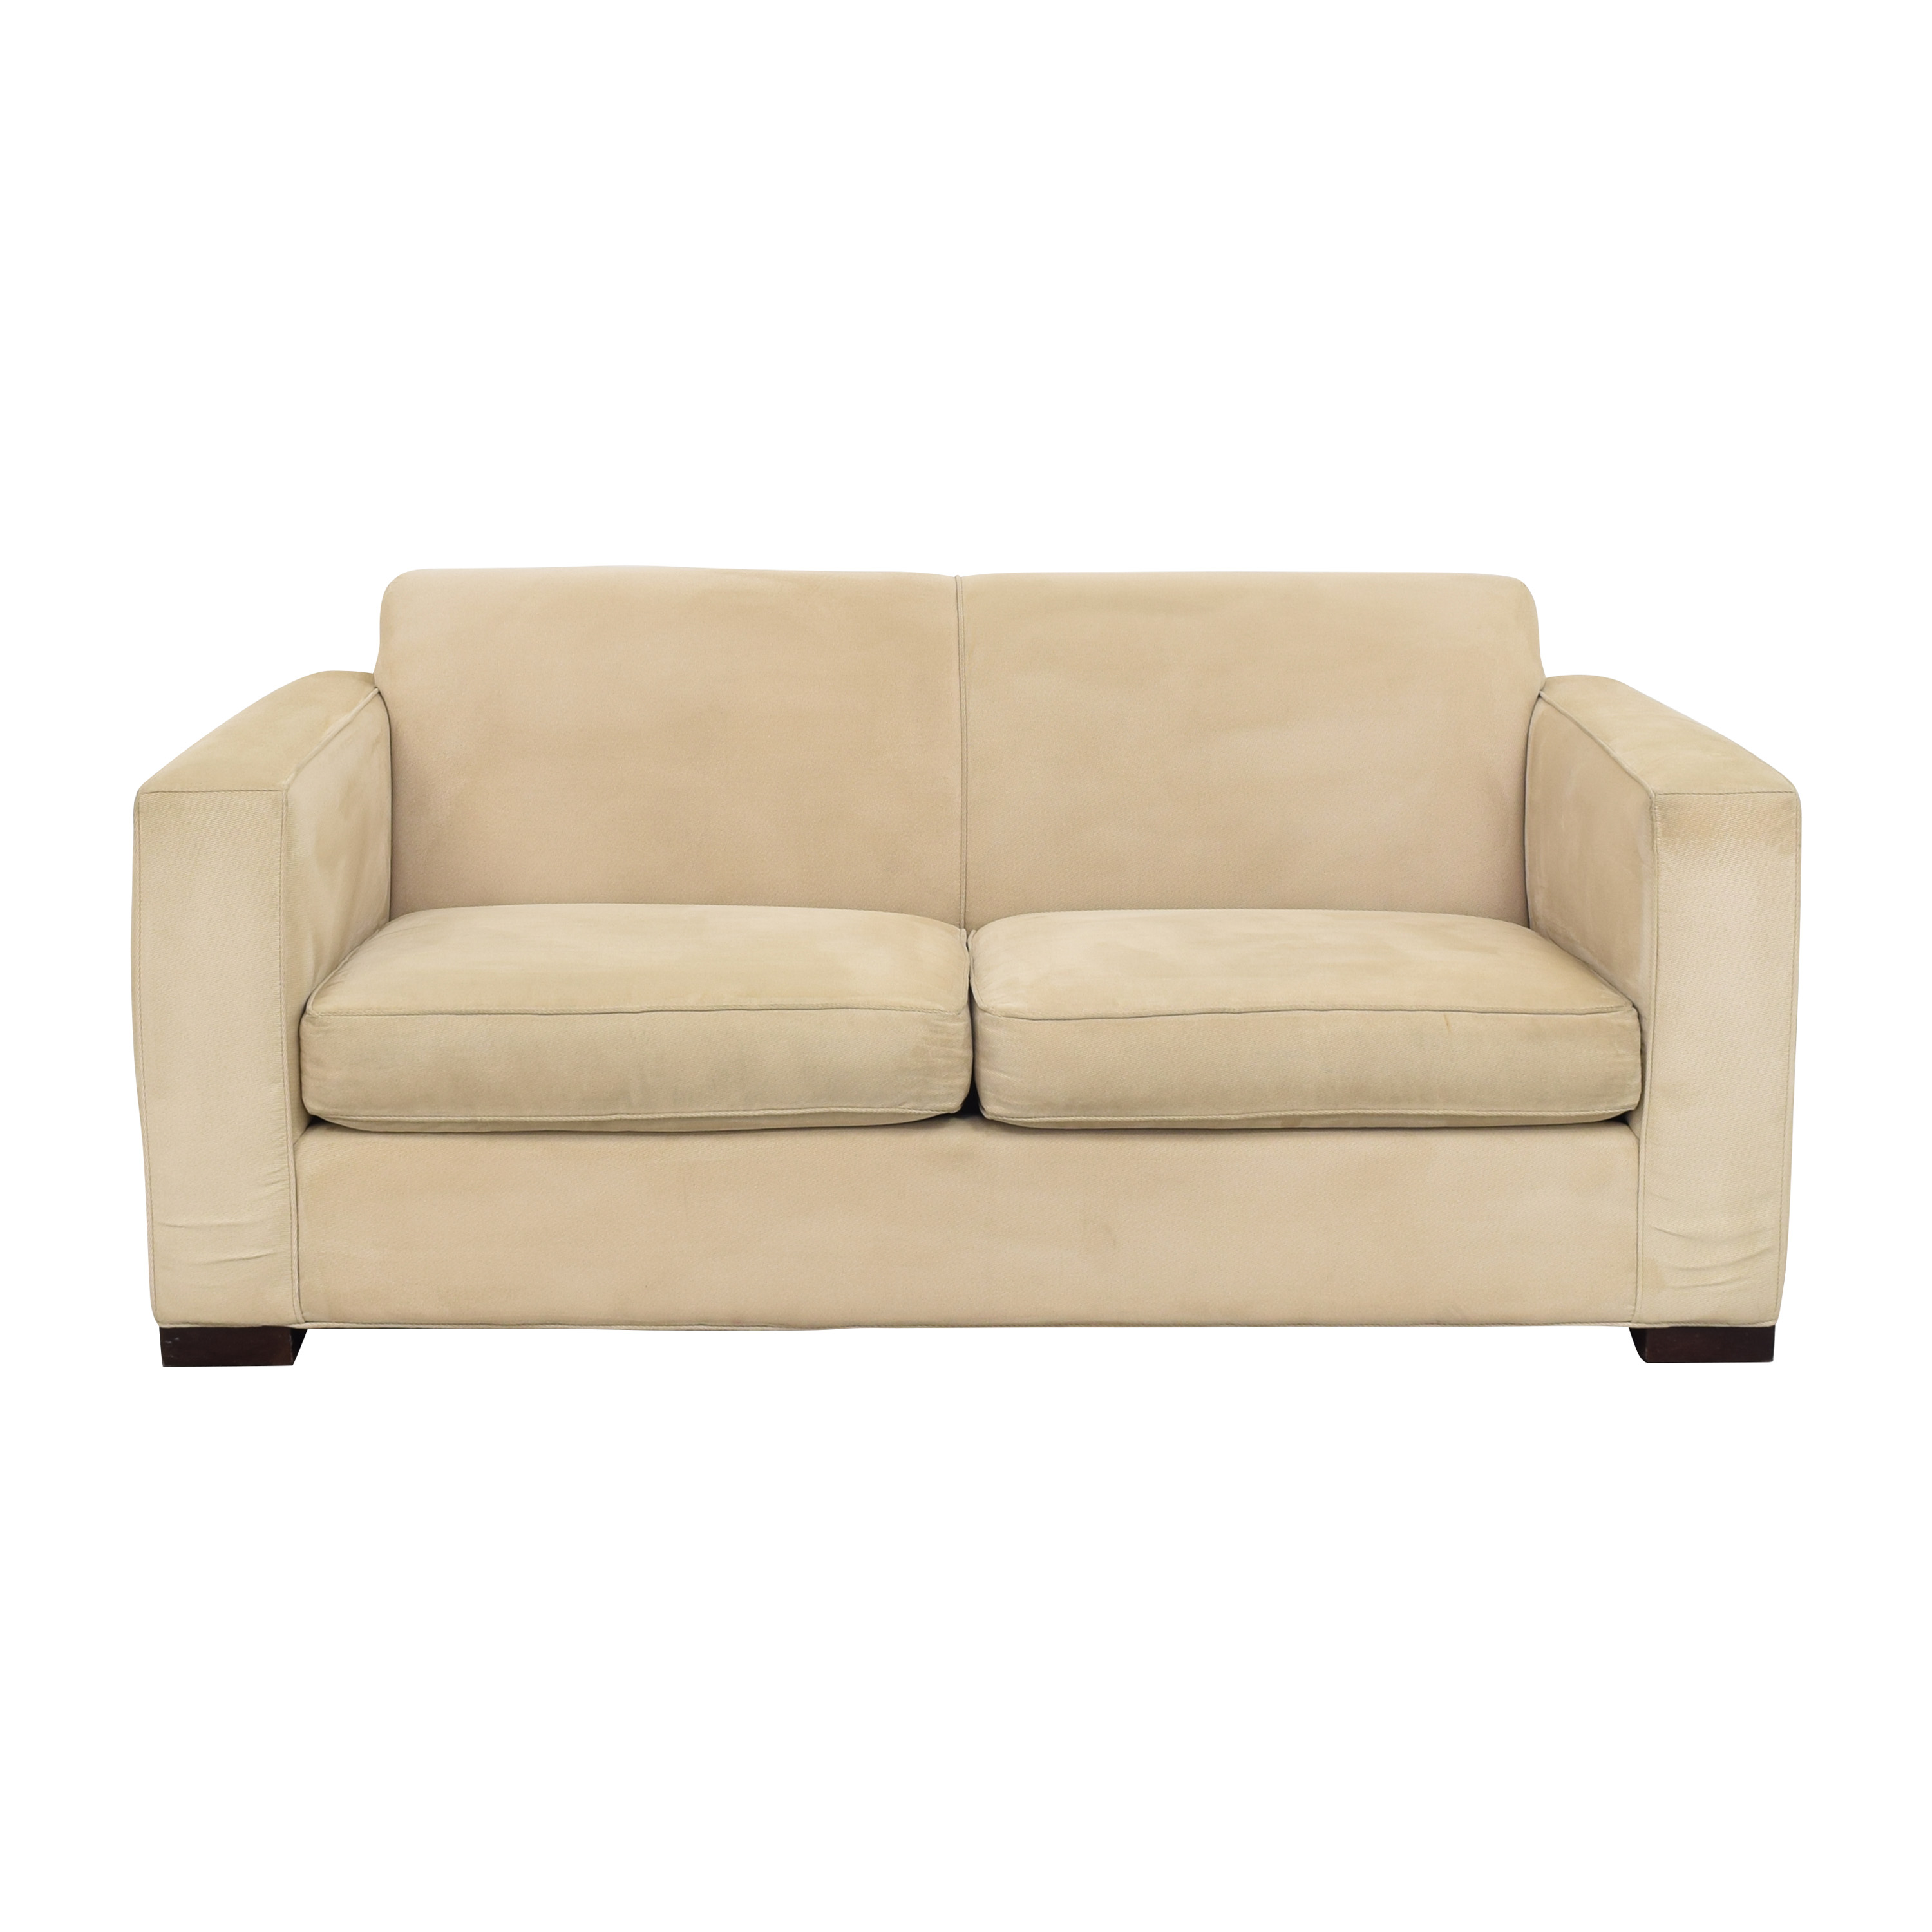 Room & Board Ian Sofa / Classic Sofas